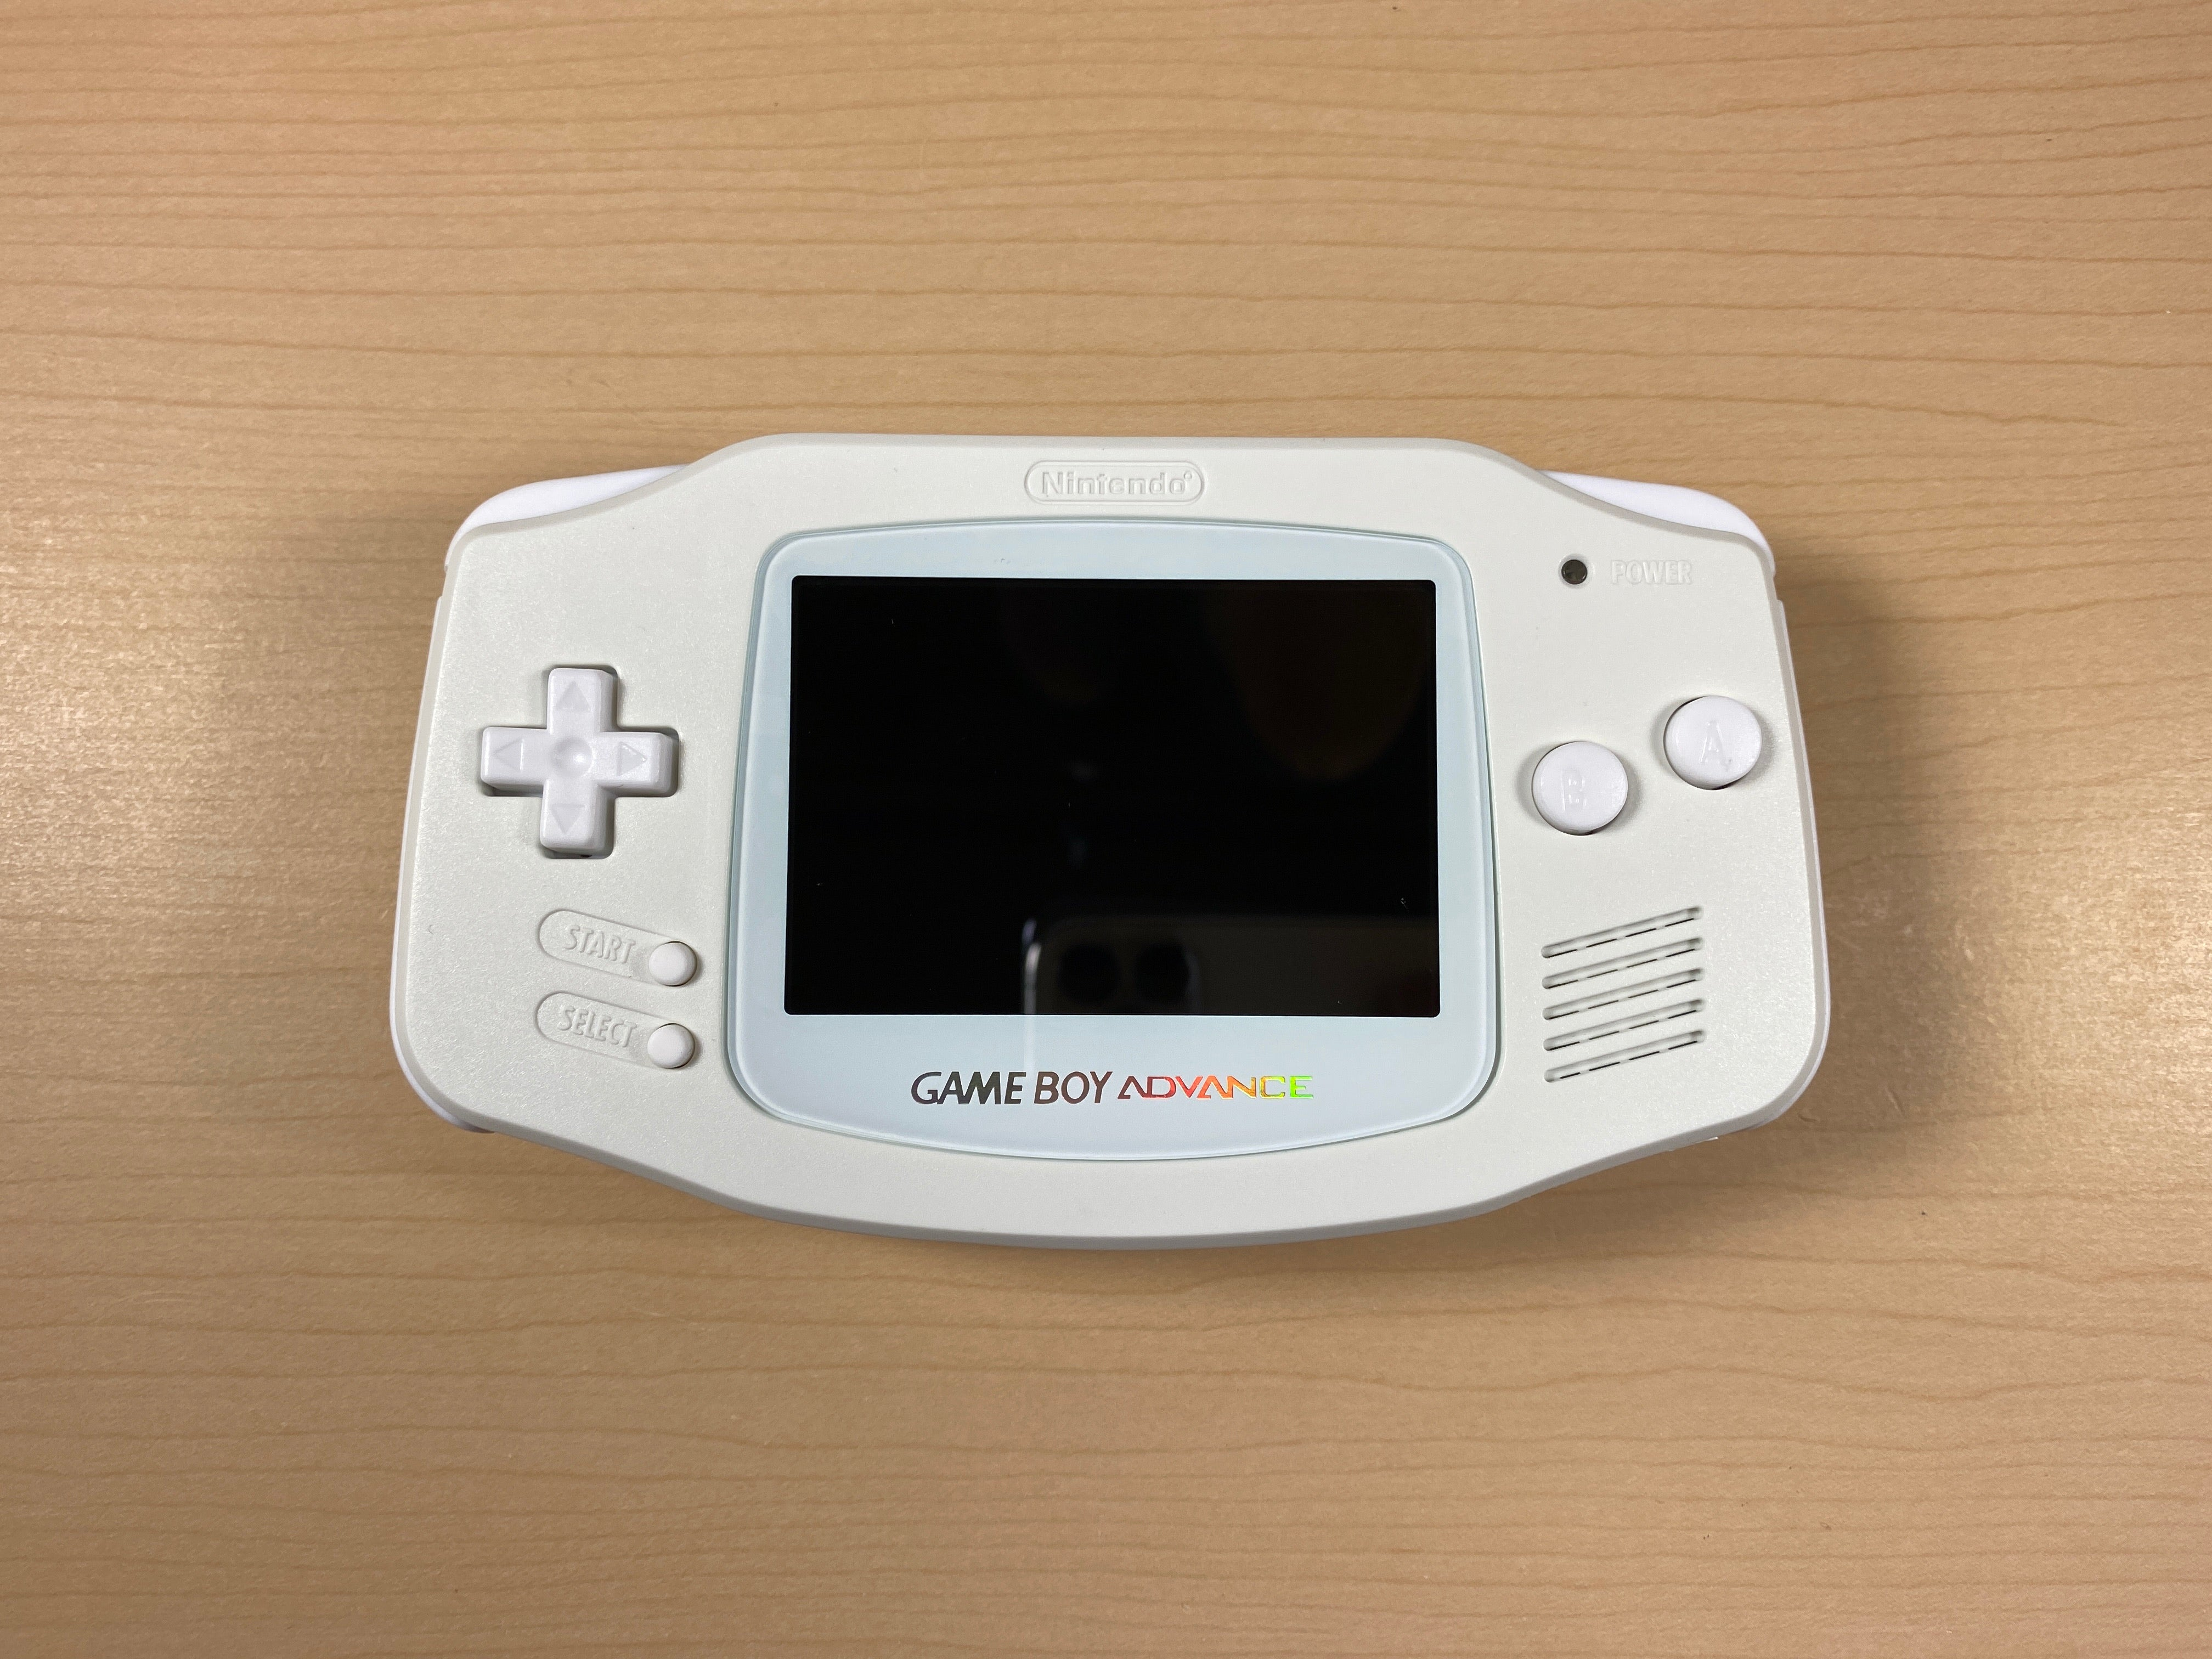 Modded Game Boy Advance W/ IPS Screen (All White)